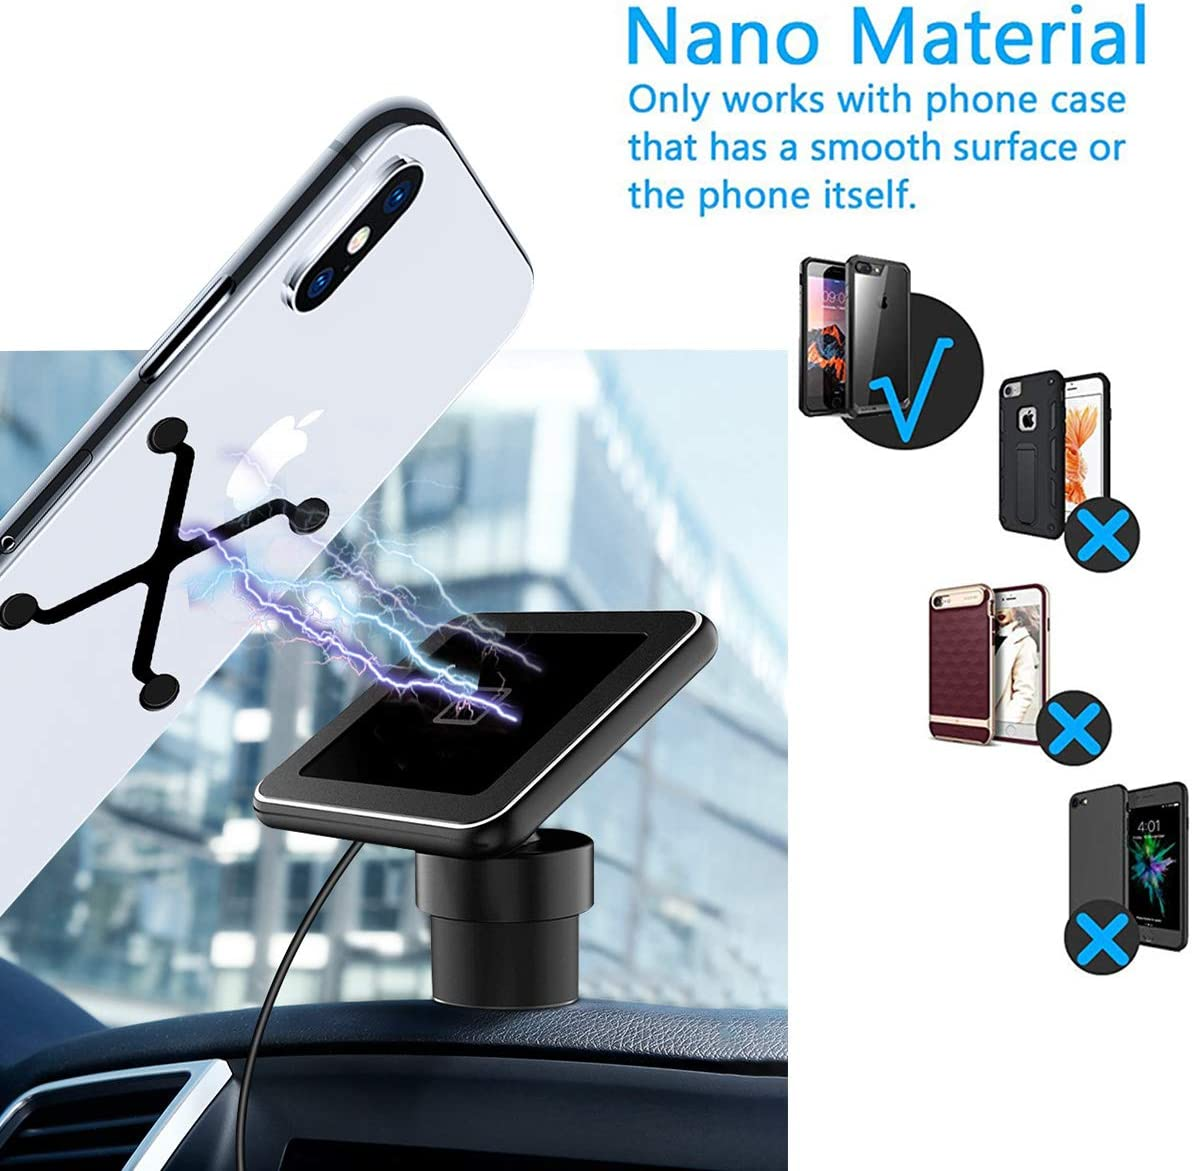 //Xs Max//XR//8 Samsung Note 8//9 S10//S9//S8 All Qi-Device 10W Qi Car Phone Mount for iPhone 11 Pro Magnetic Qi Wireless Car Charger Nano Magnetic Qi Car Charger for Air Vent//Table Max Magnetic Plate